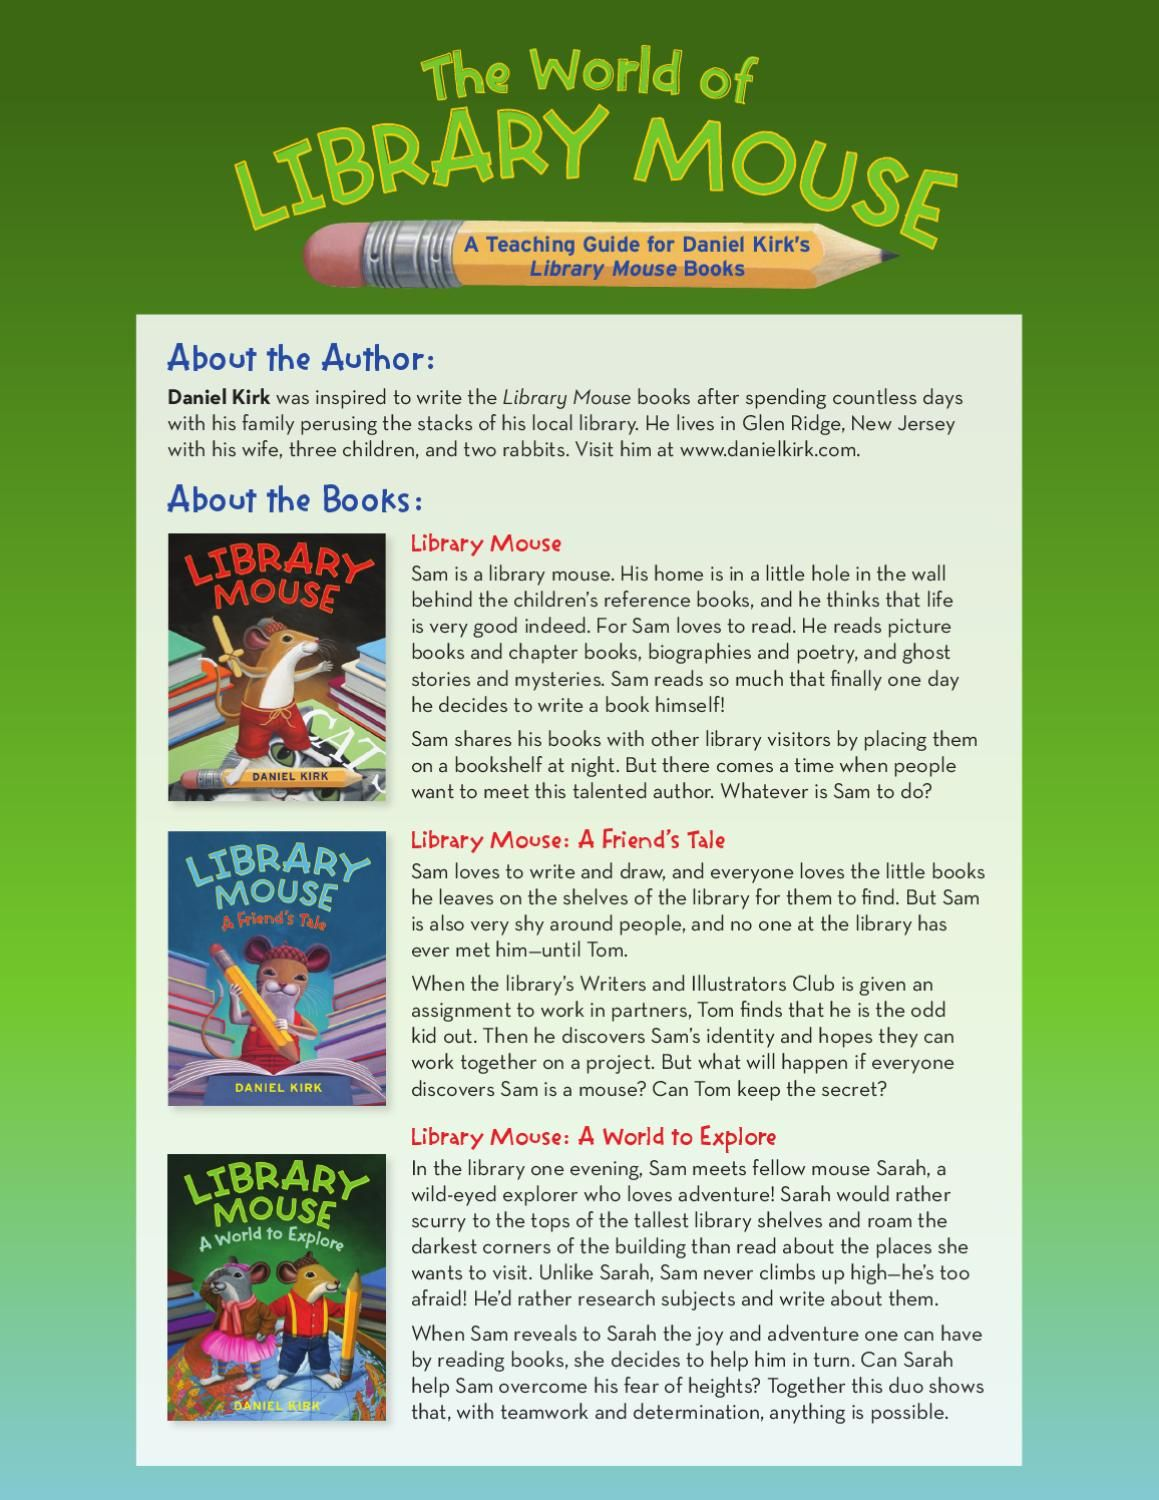 The World Of Library Mouse A Teaching Guide For Daniel Kirk S Library Mouse Books